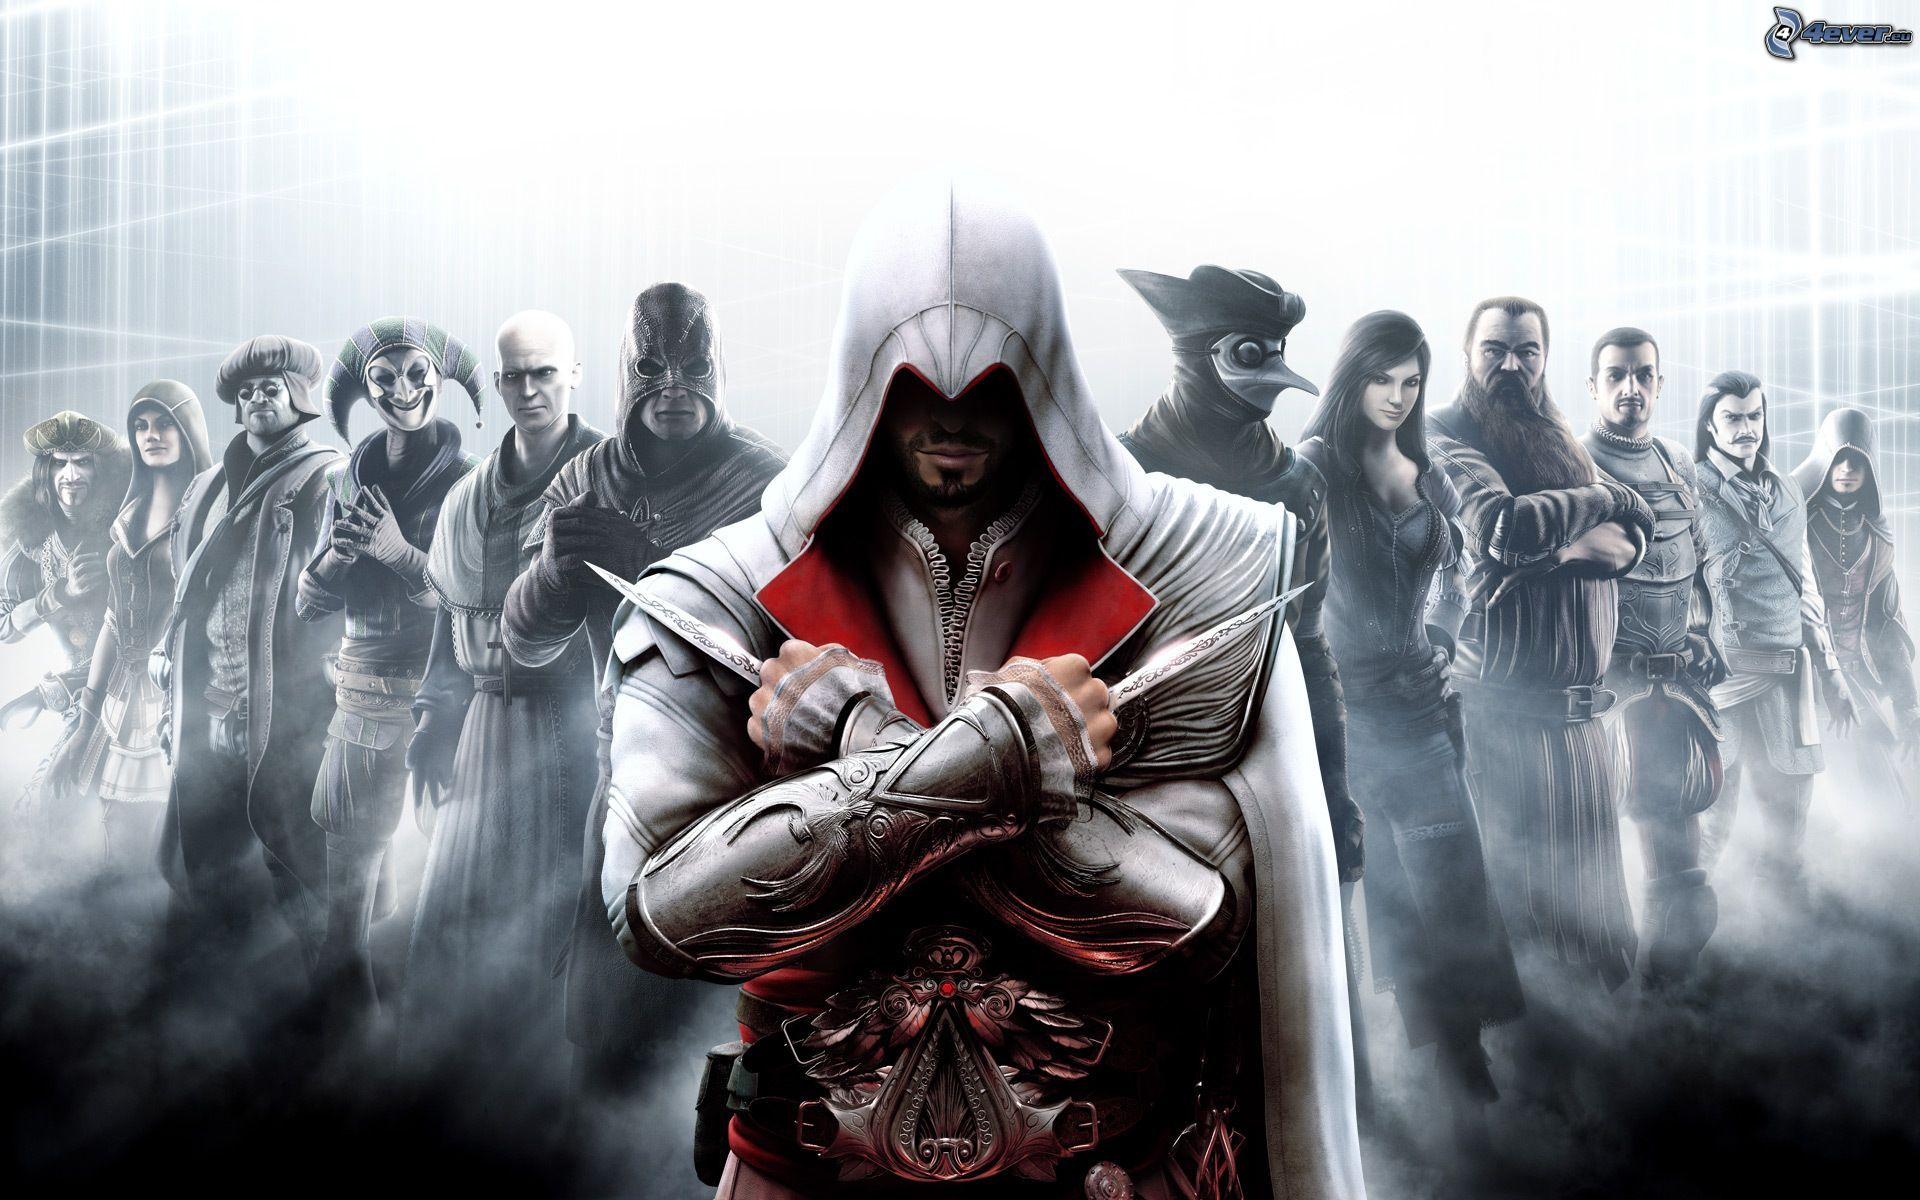 Assassins creed brotherhood nobleman smuggler engineer harlequin priest executioner ezio auditore da firenze the doctor courtesan blacksmith captain barber prowler 148841